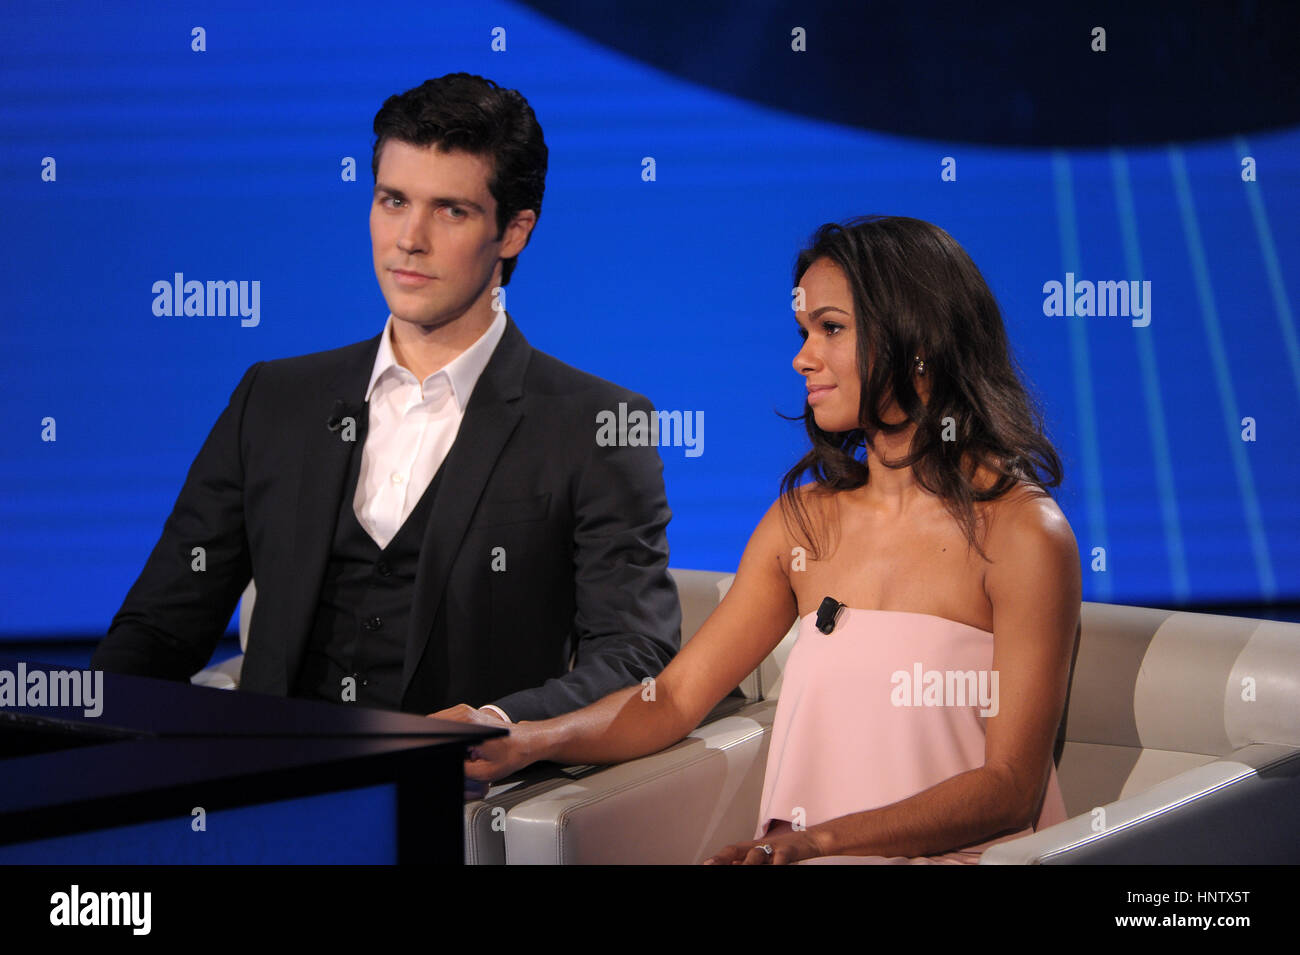 Ballet dancers Roberto Bolle and Misty Copeland appearing on RAI-3 talk show 'Che tempo che fa,' in Milan, - Stock Image